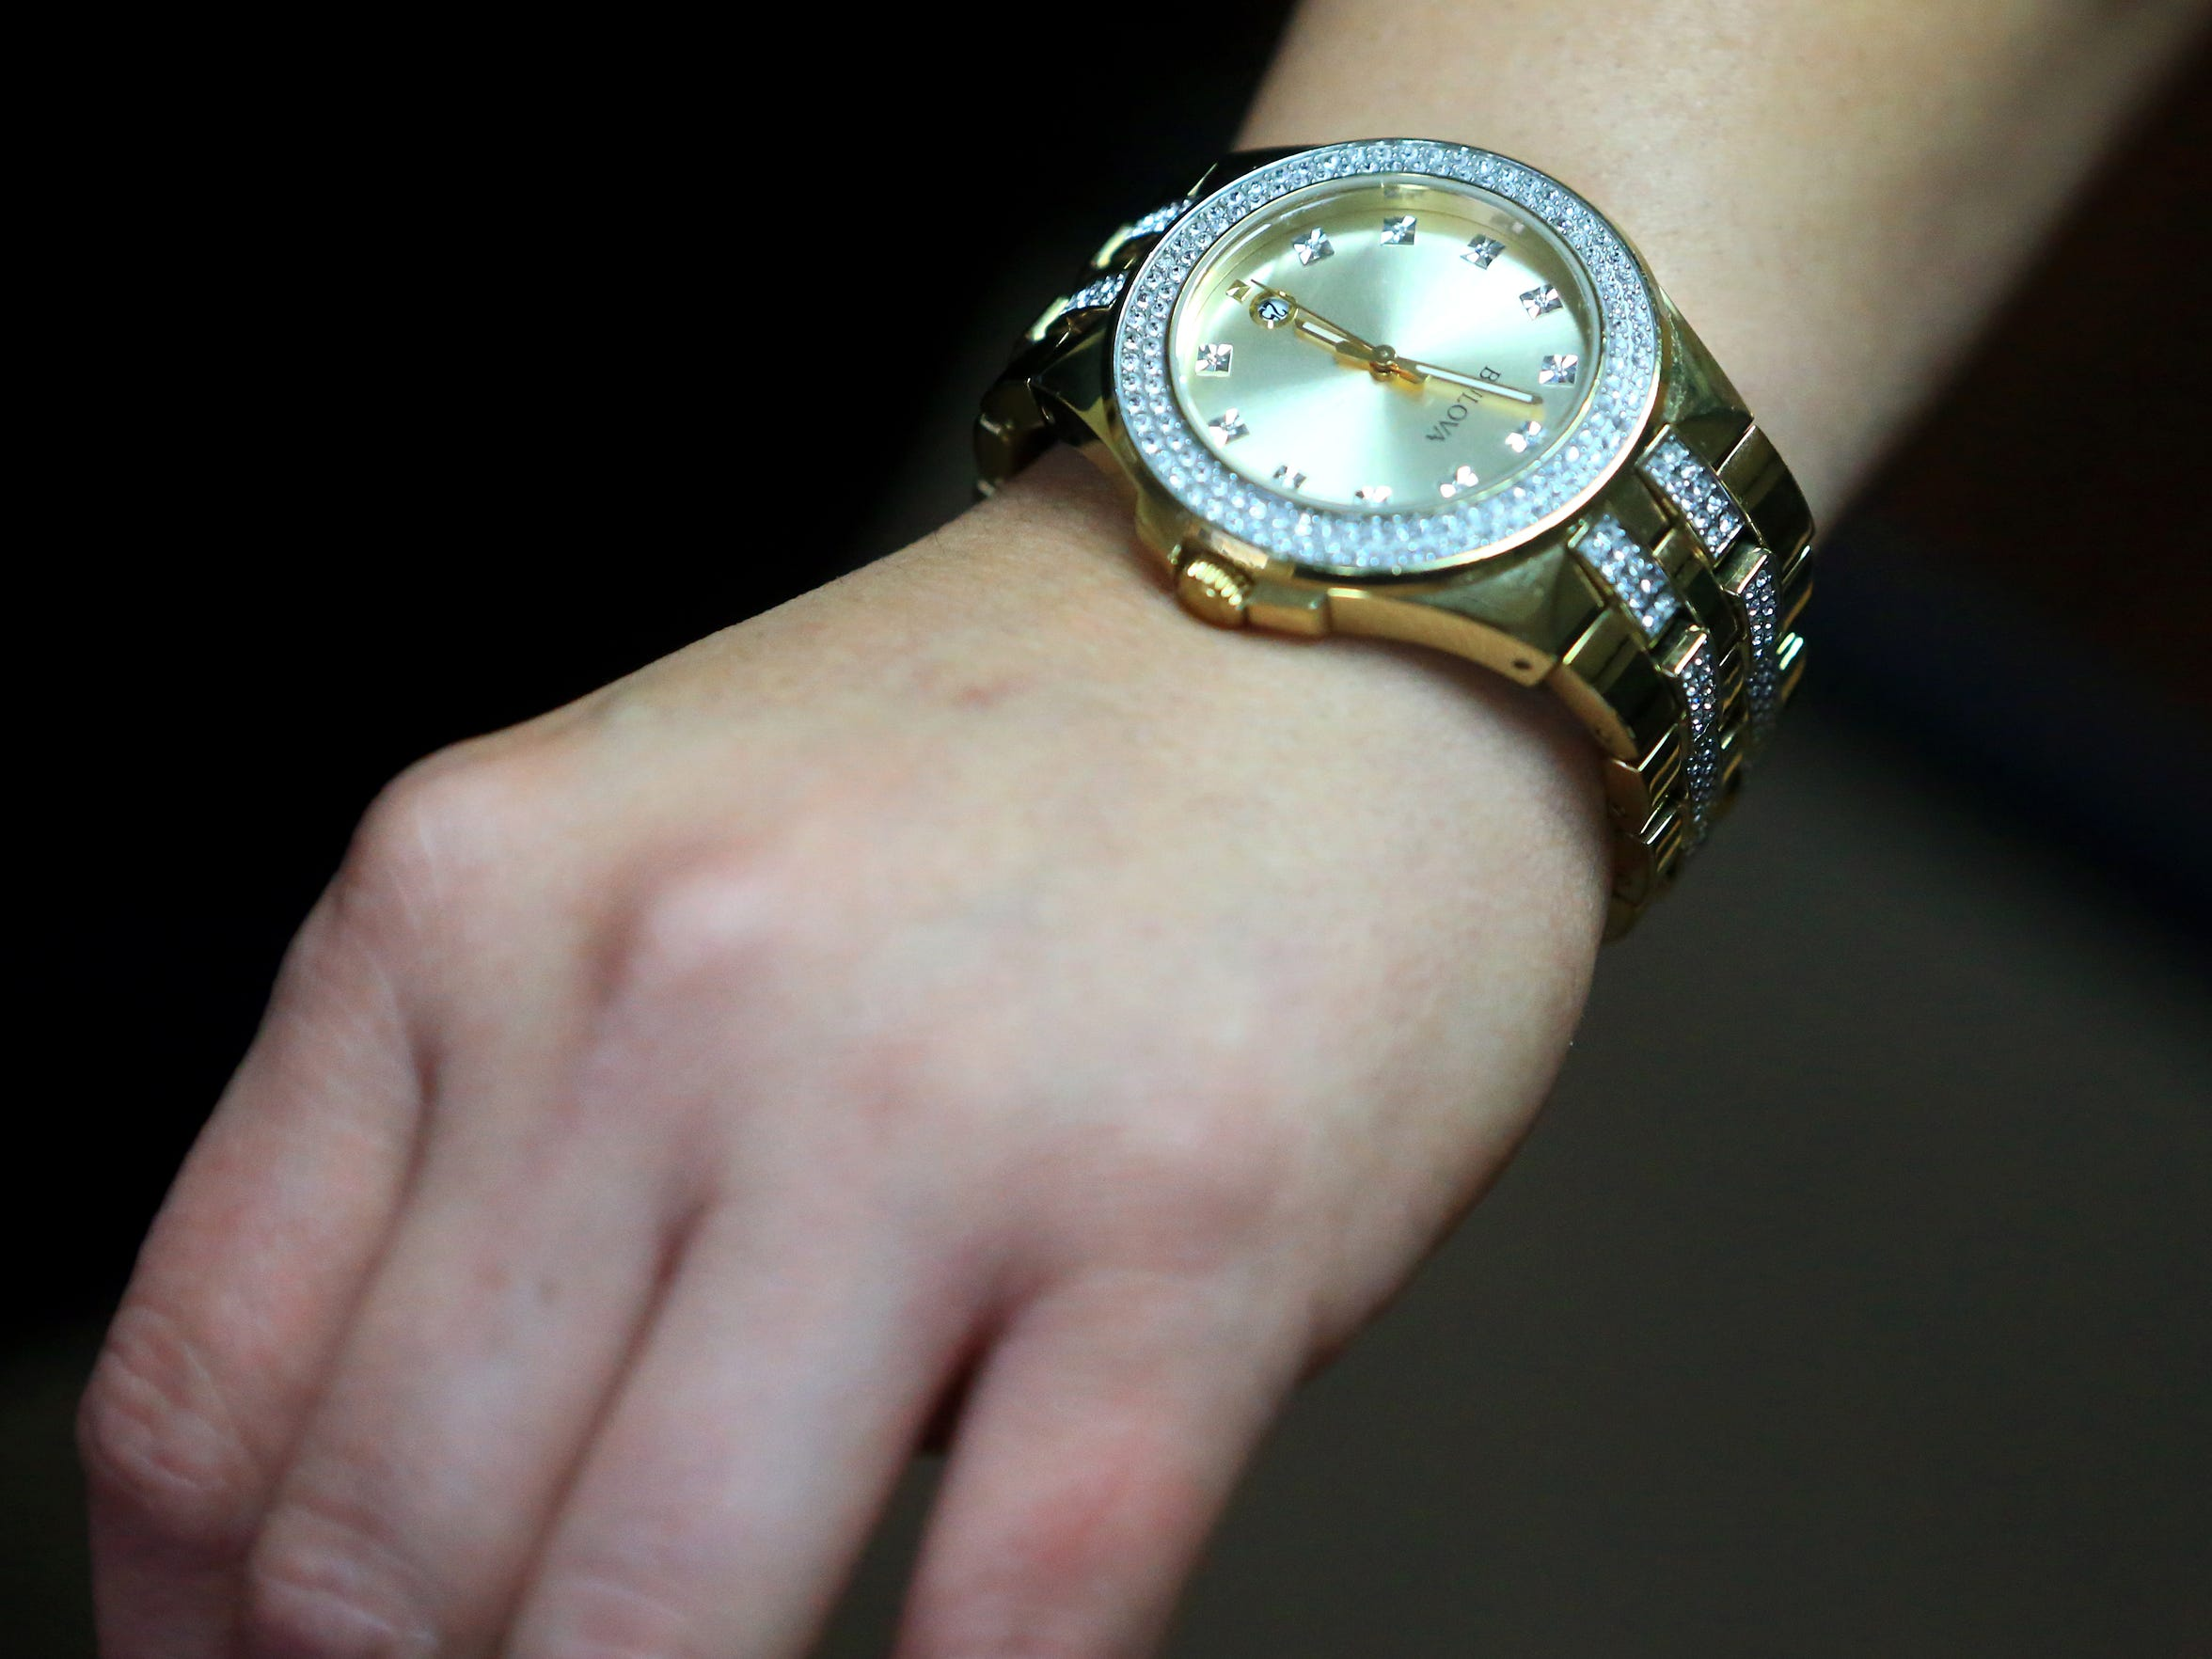 Marina Garcia wears hers sons Josiah Christian Cantu watch that he bought with his own money on graduation April 11, 2017, in Corpus Christi. Cantu died from a gun shot wound in the stomach last year. Corpus Christi Police initially said Cantu shot himself, but a year later Nueces County District Attorney Mark Gonzalez is seeking a criminal indictment against a friend.